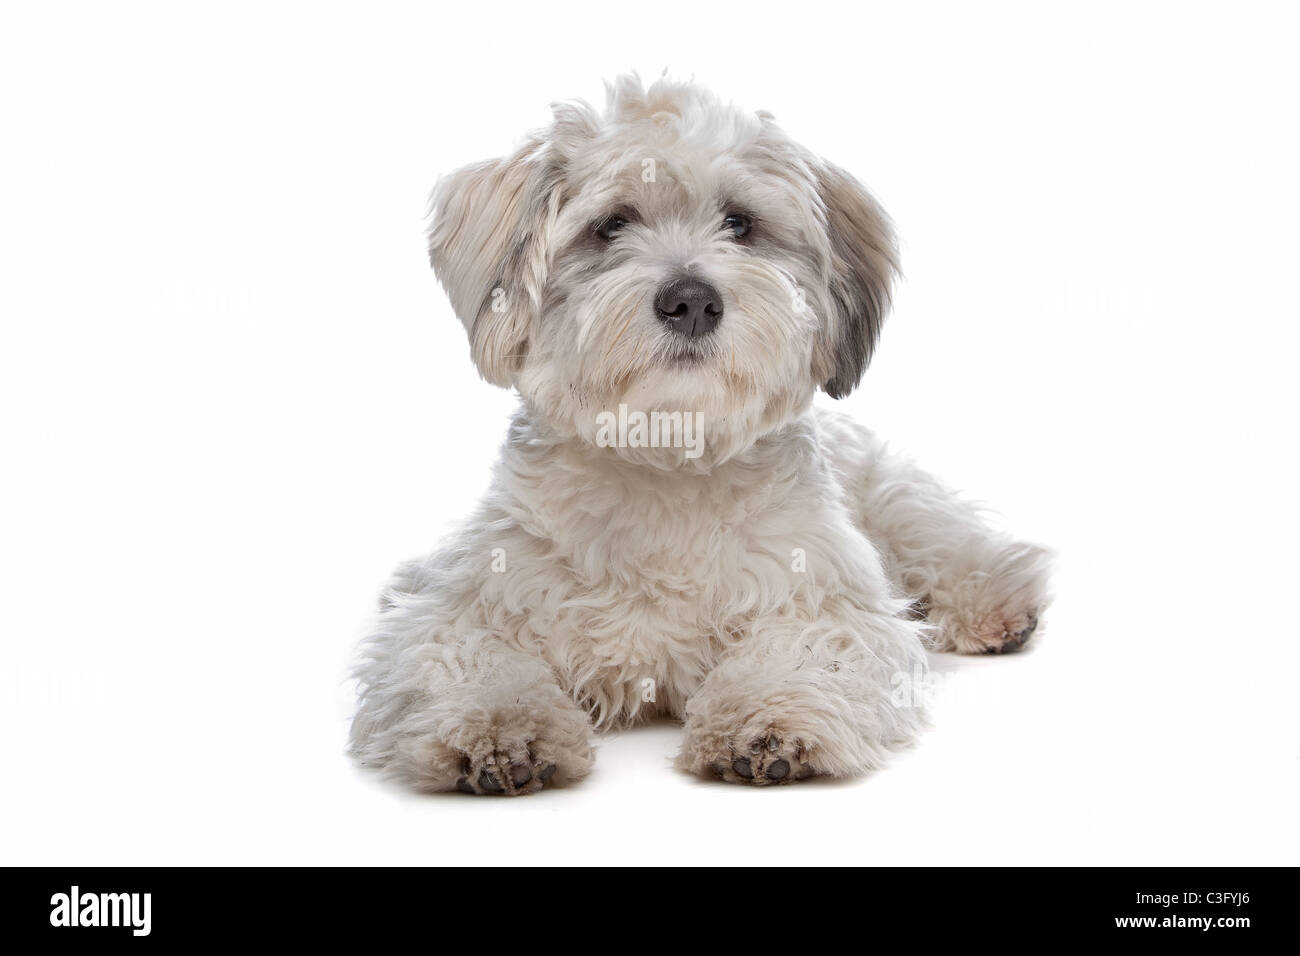 boomer, mixed breed dog in front of a white background - Stock Image